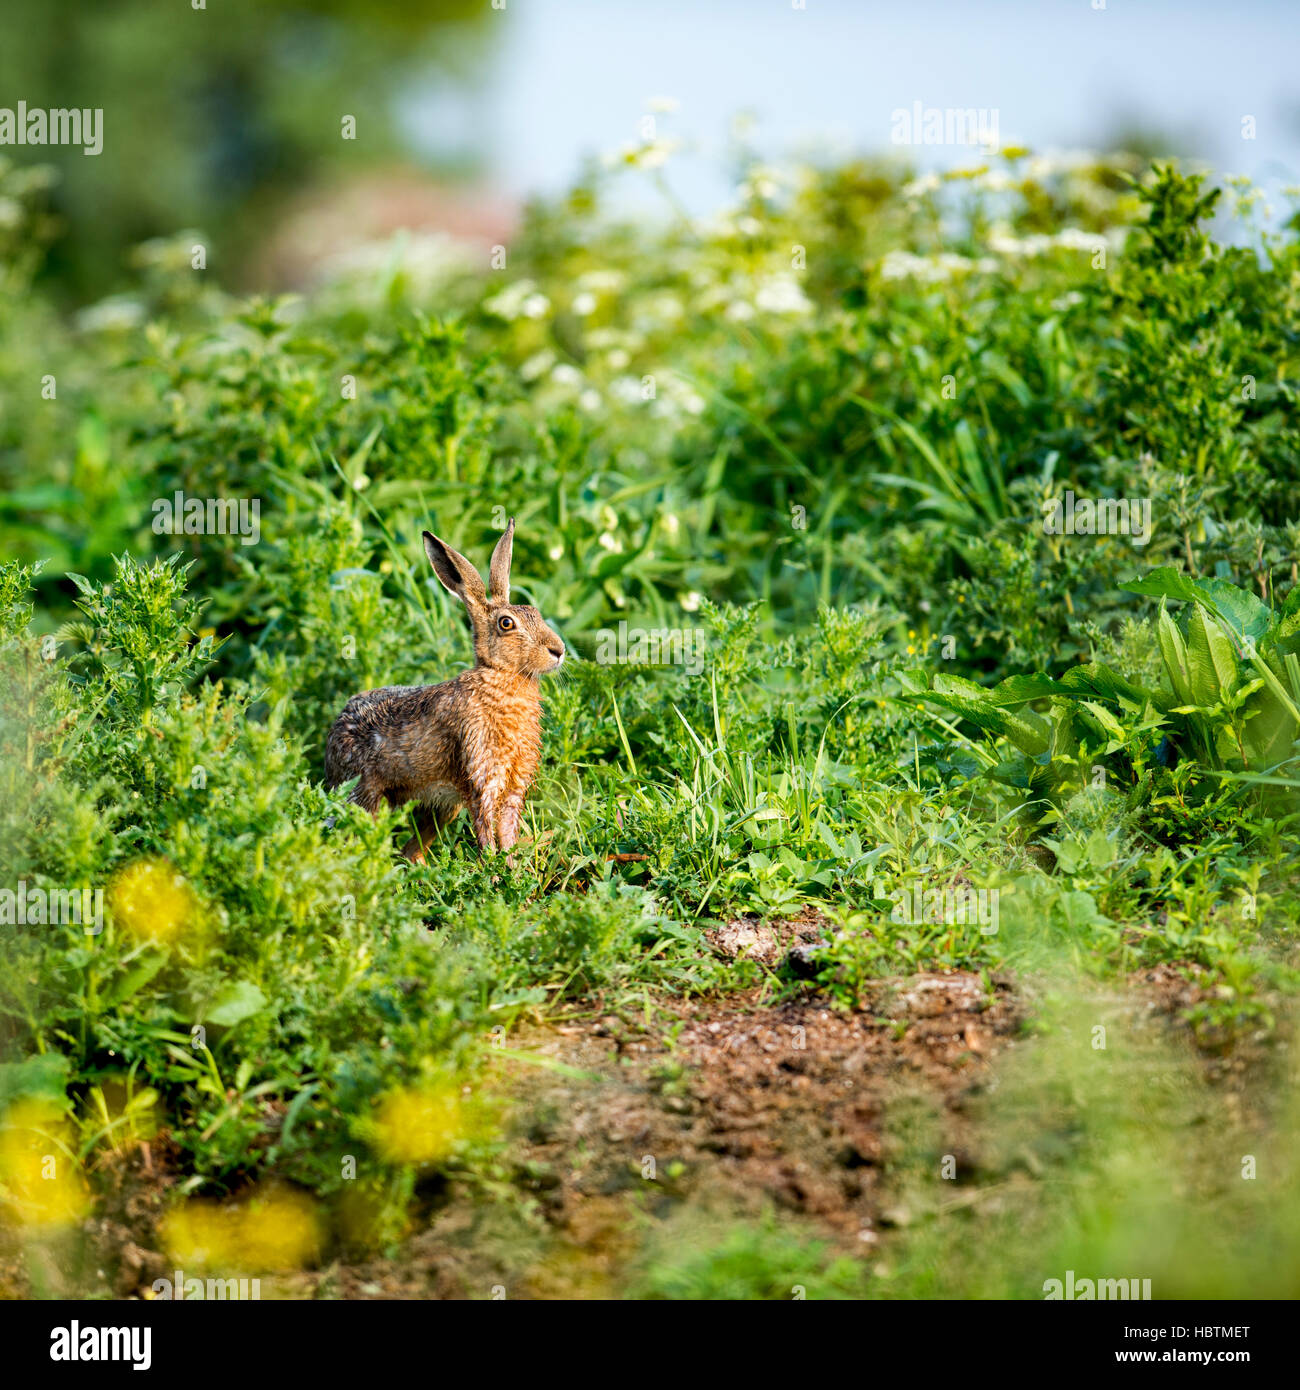 A brown hare emerges from cover to enjoy the warm morning sun. - Stock Image